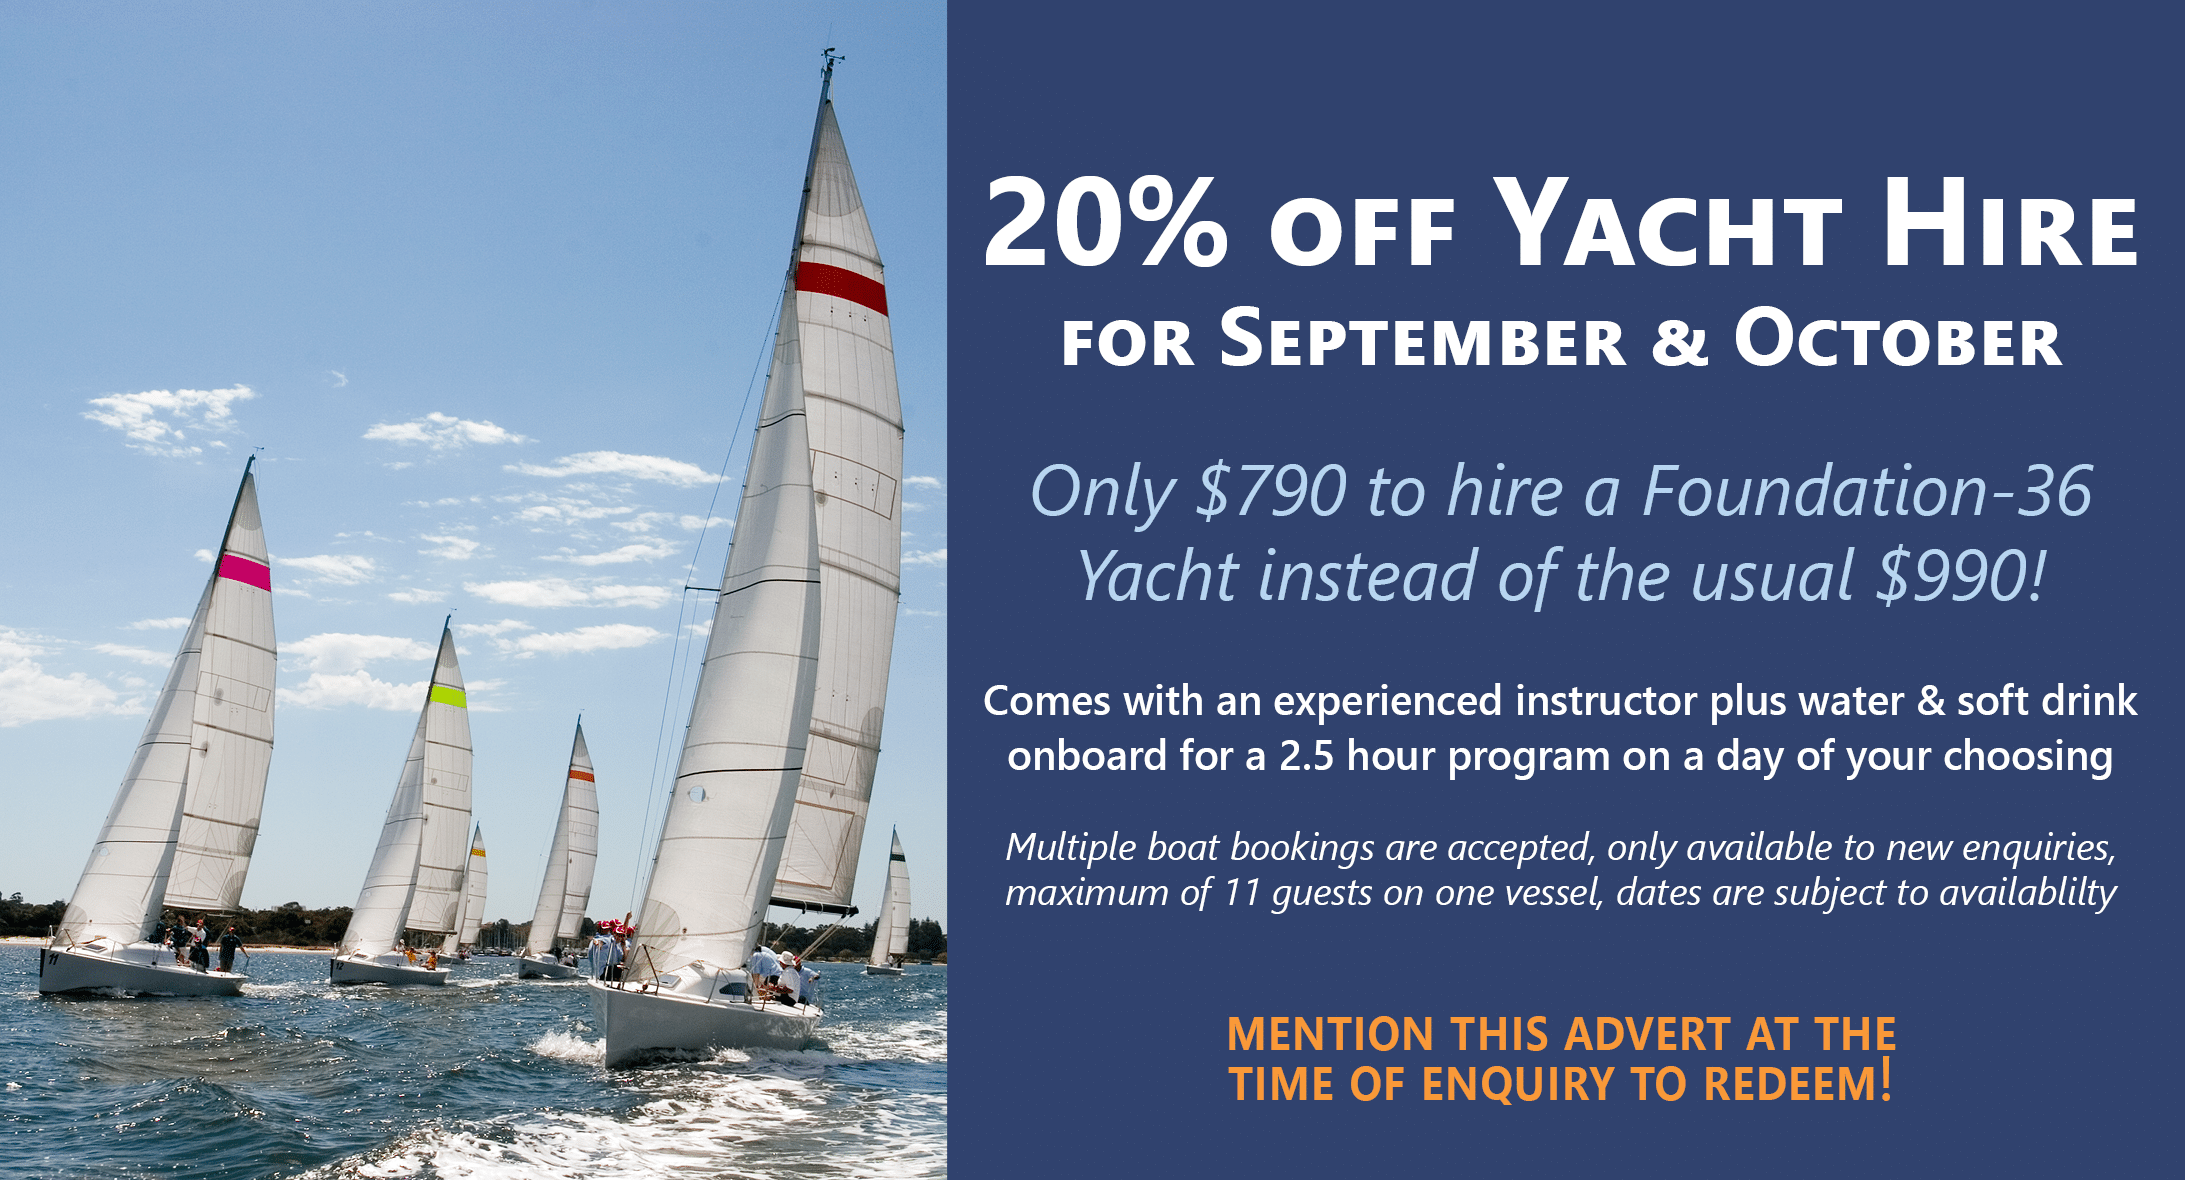 swan river sailing special september and october promotion for new corporate sailing bookings in perth, wa